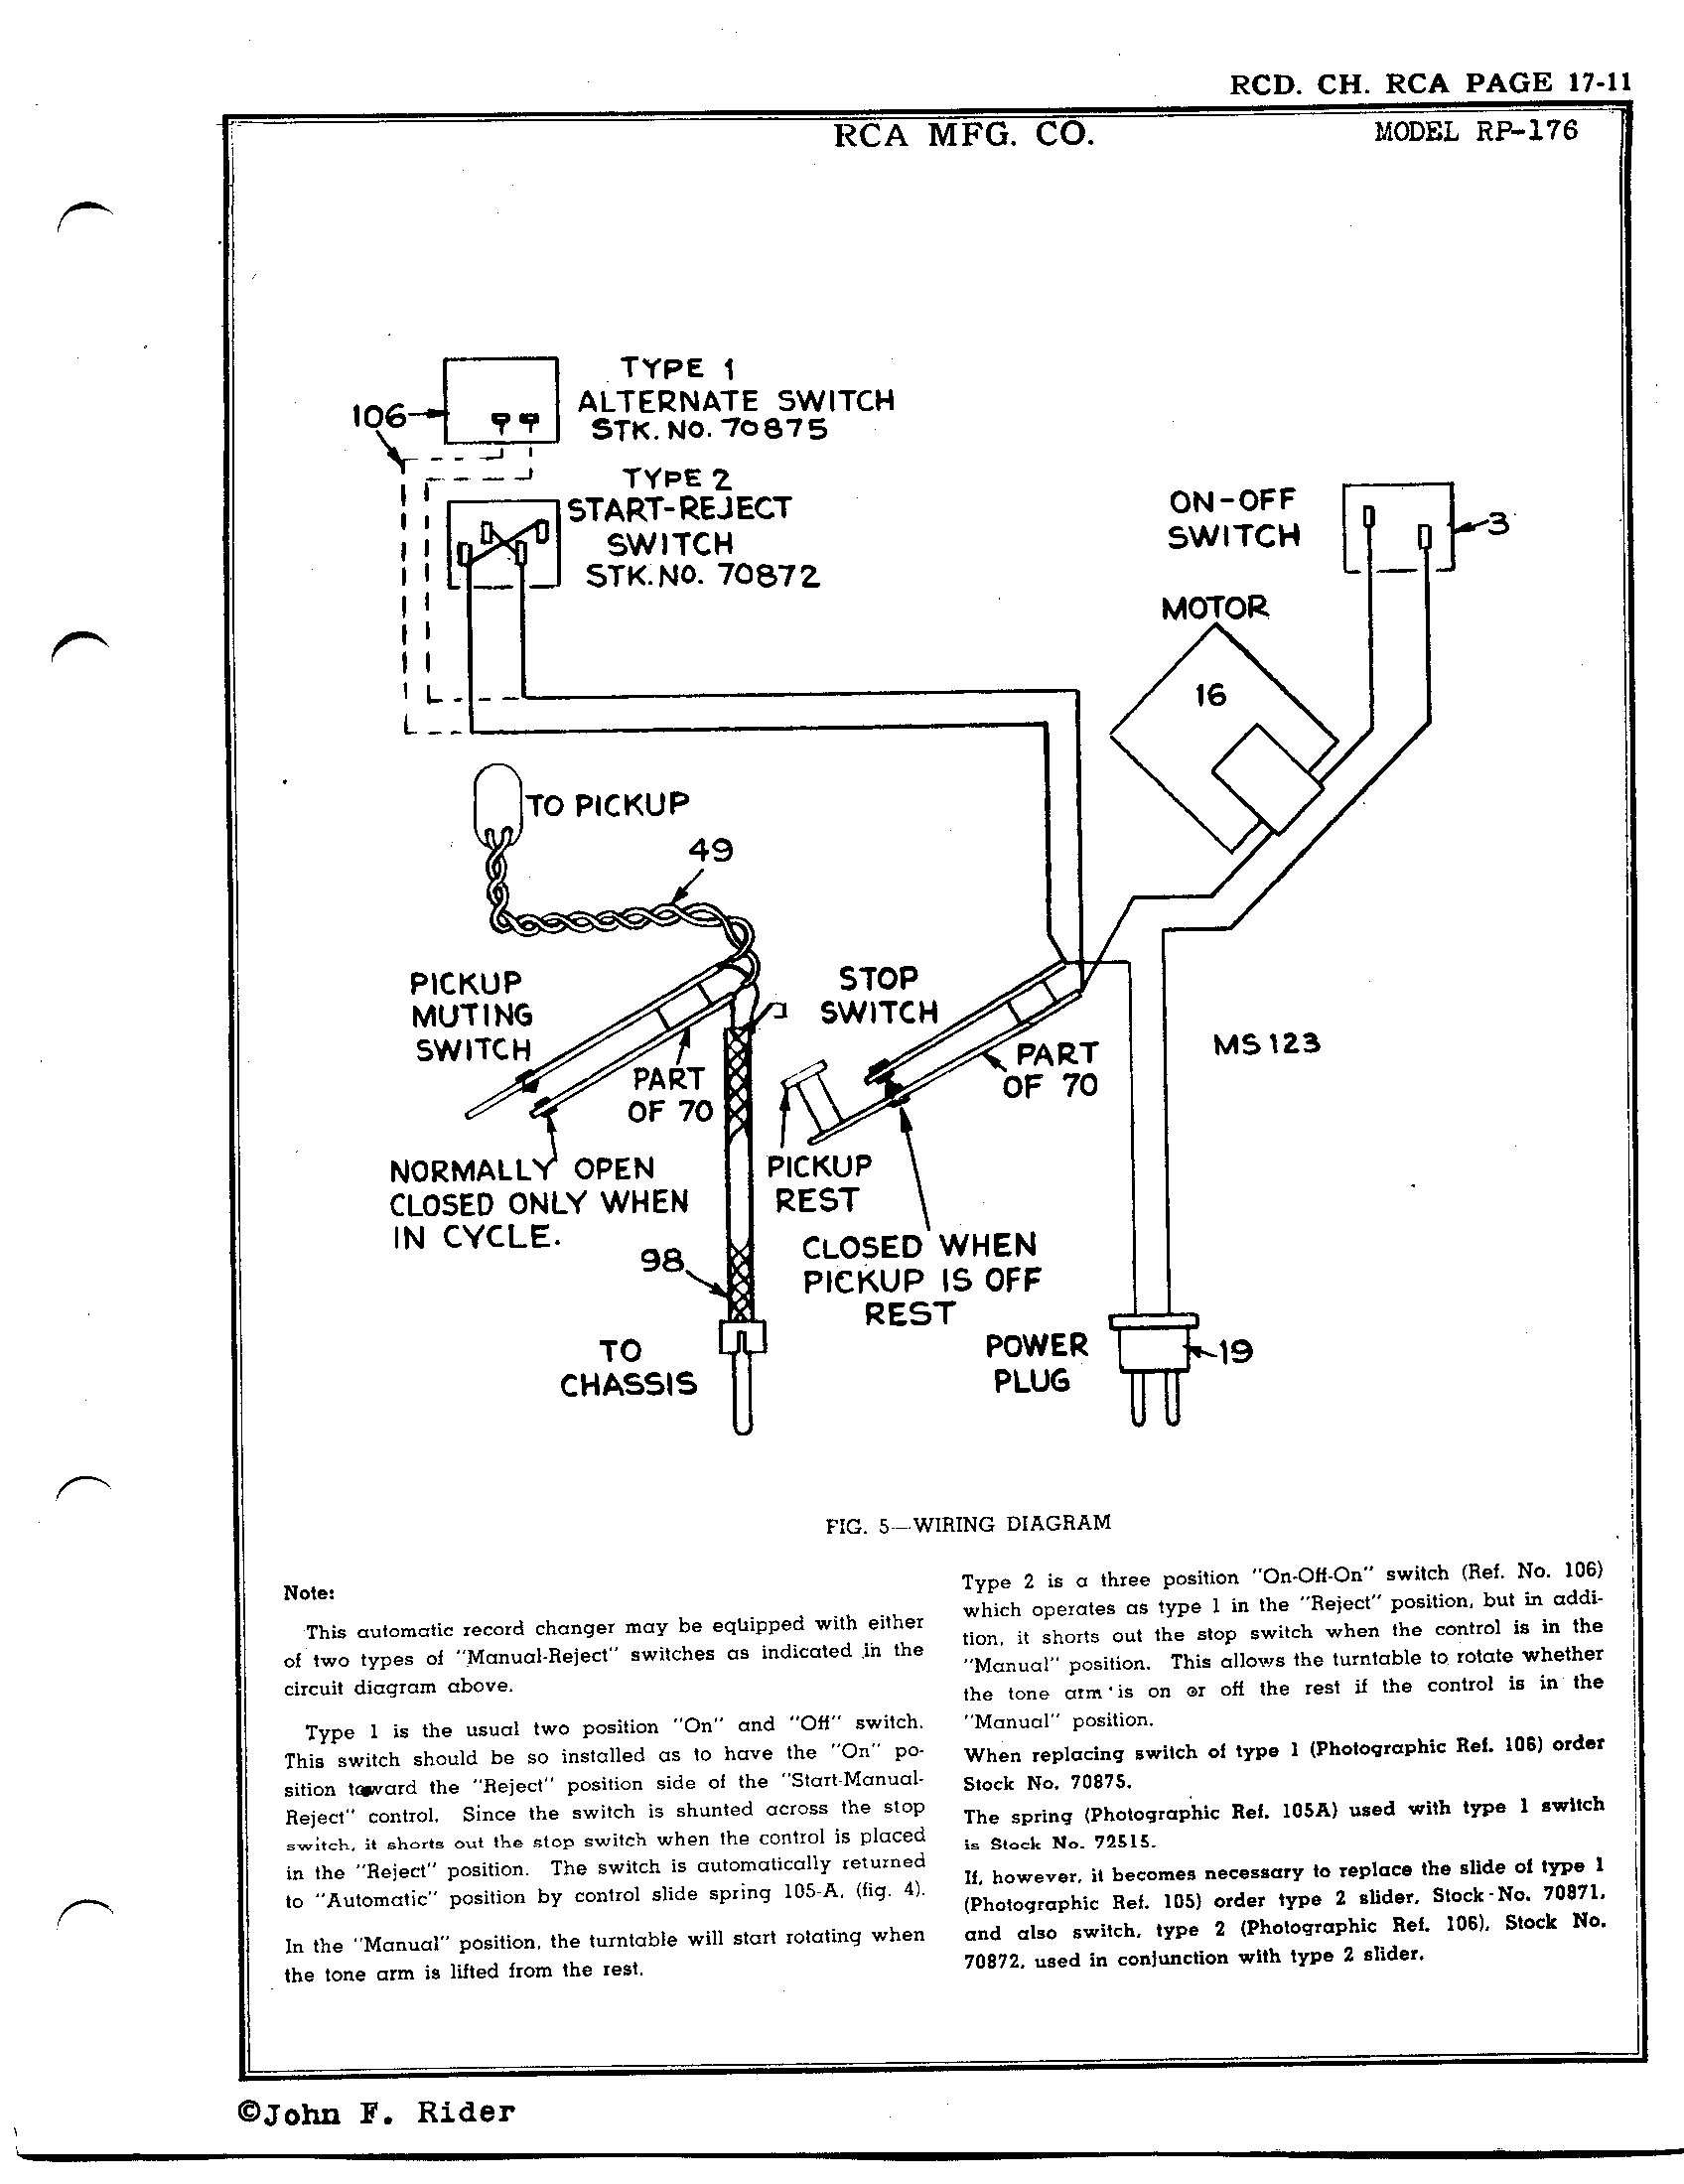 Rca Victor Co Inc Rp 176 Antique Electronic Supply Turntable Wiring Diagram Page 13 4578 Kb Rider Manual Volume 17